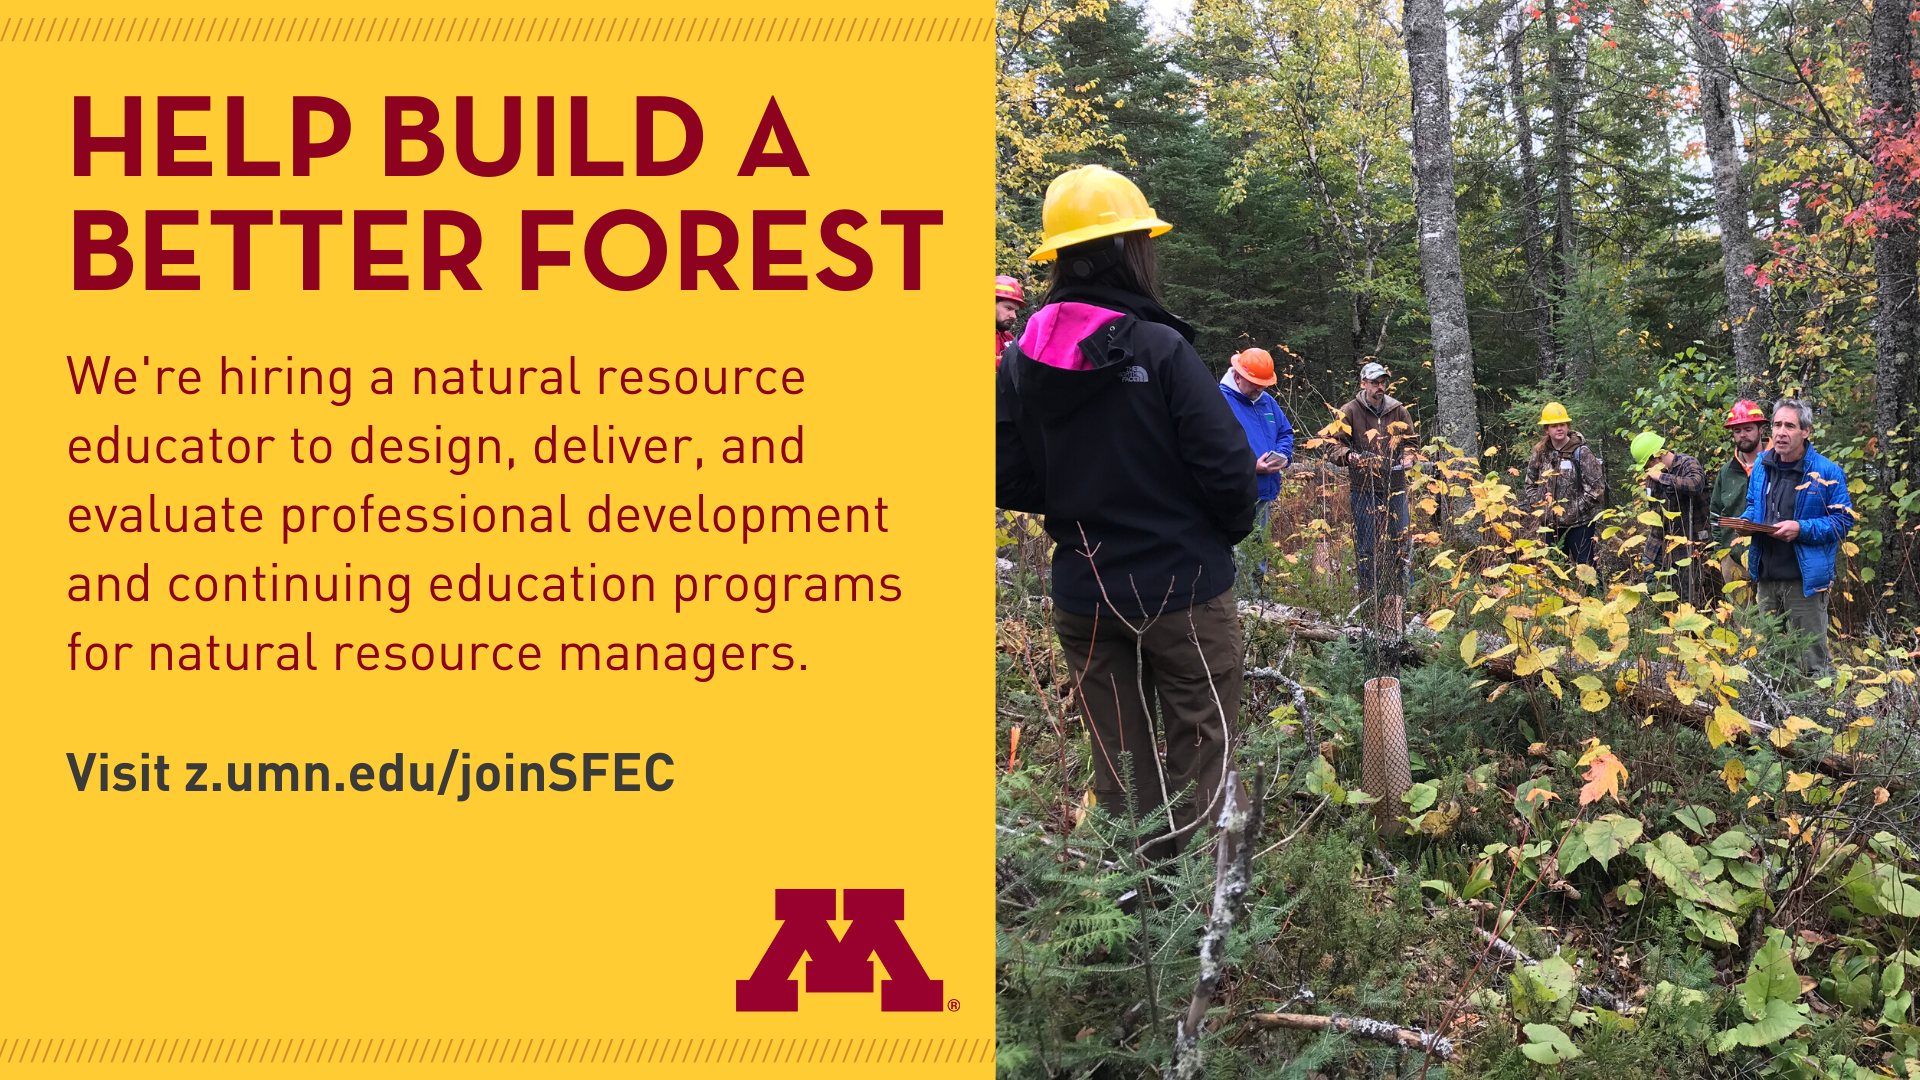 SFEC is hiring text and image of group in northern MN forest